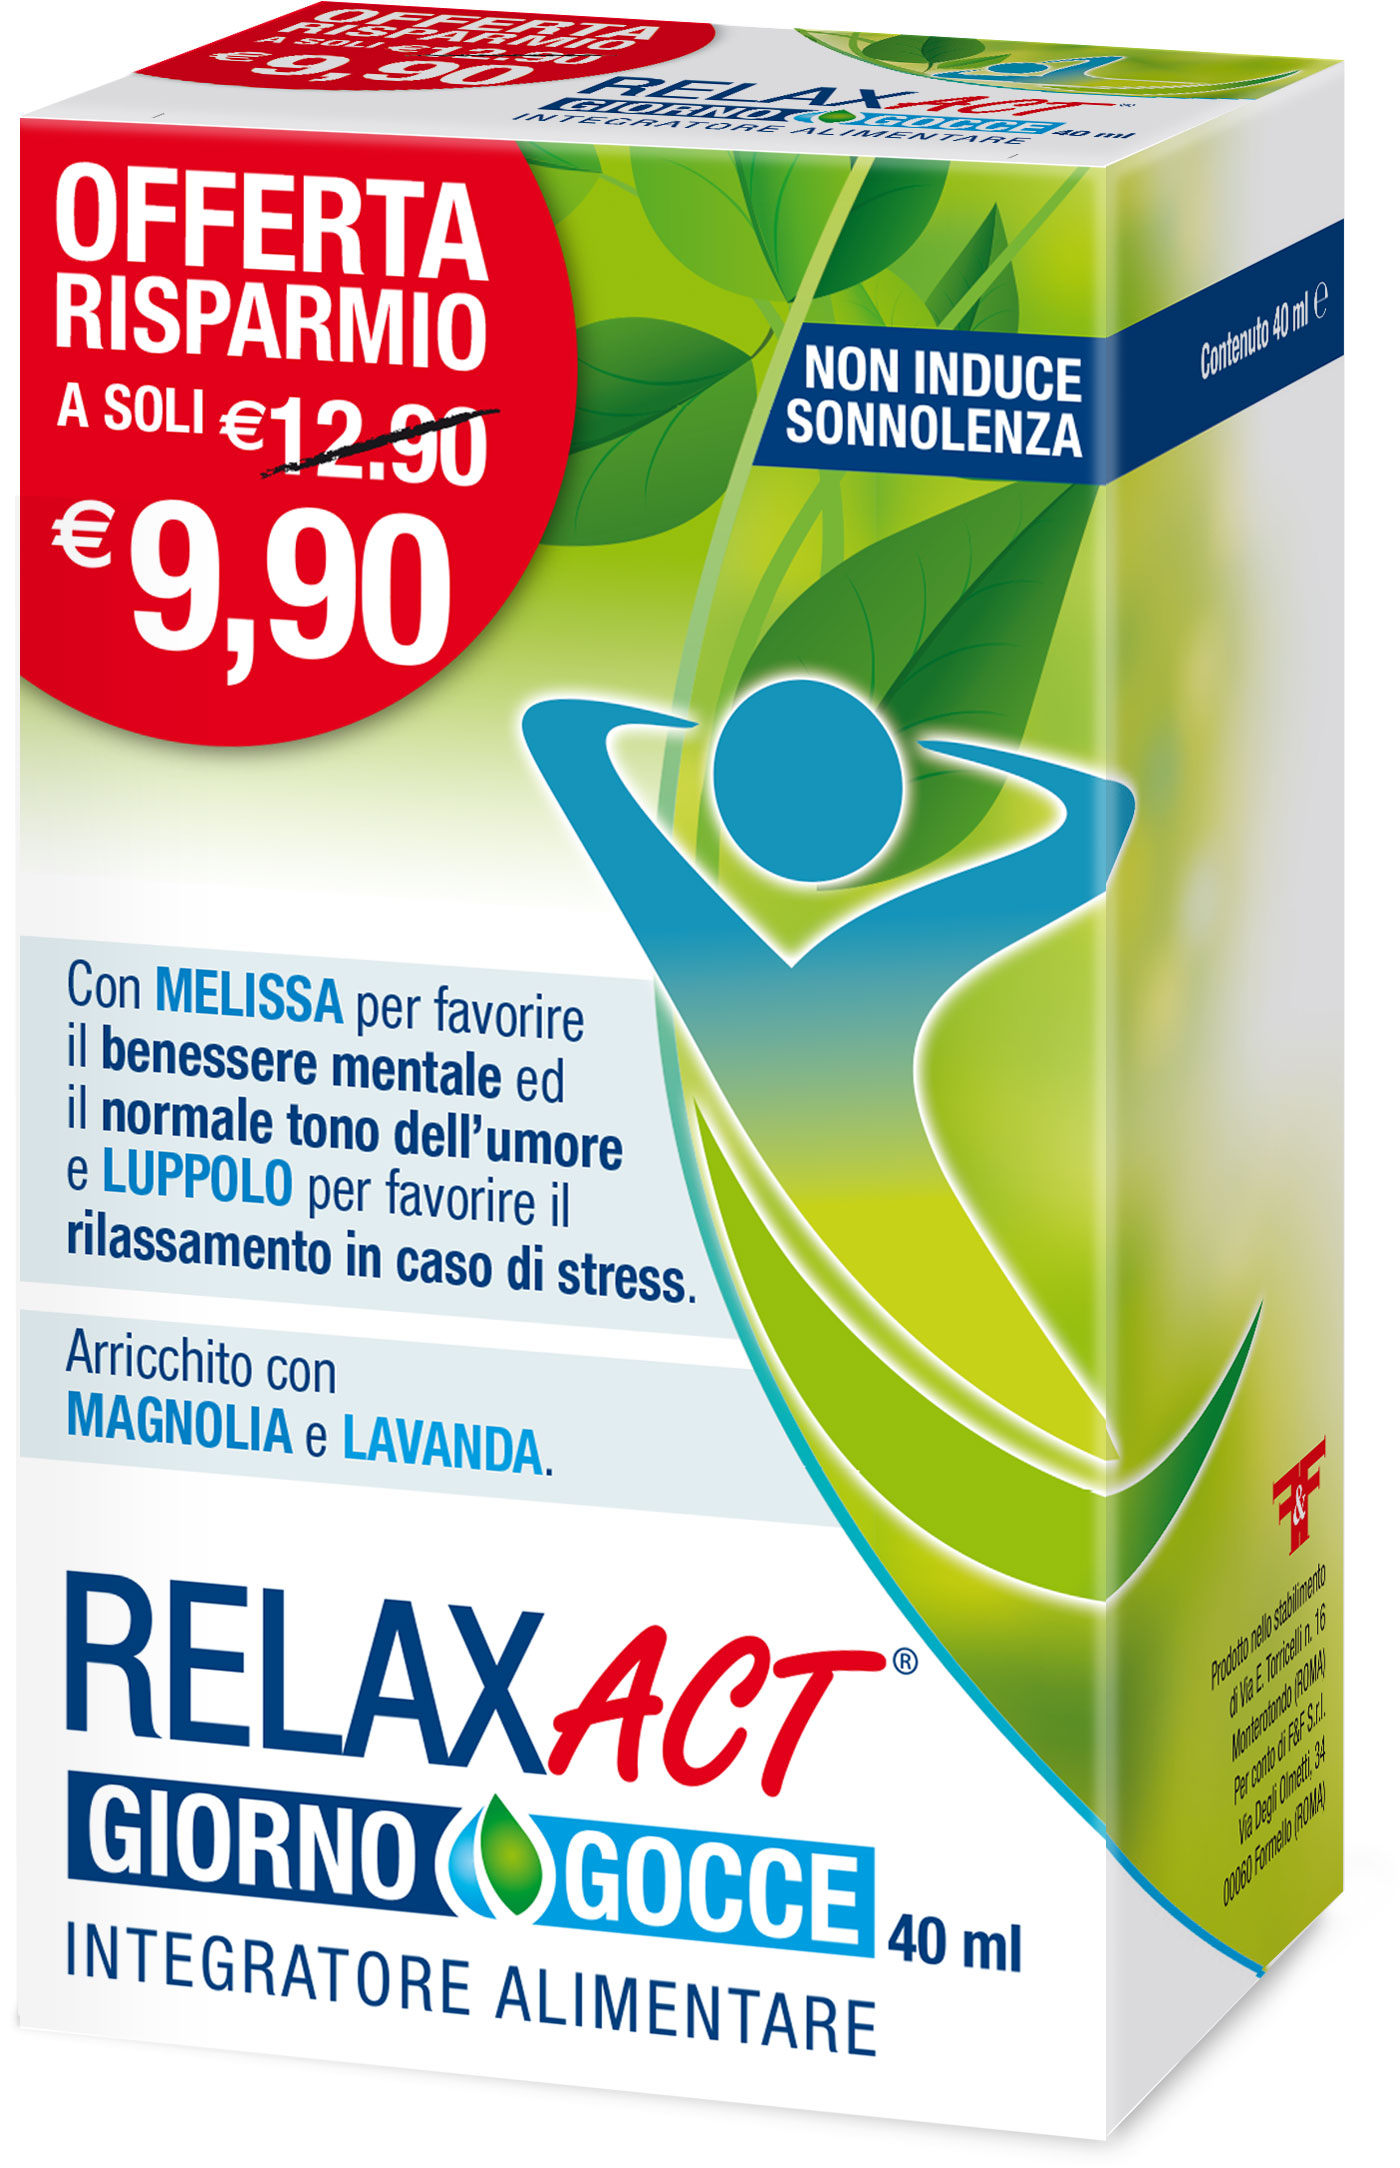 RELAX ACT GIORNO GOCCE